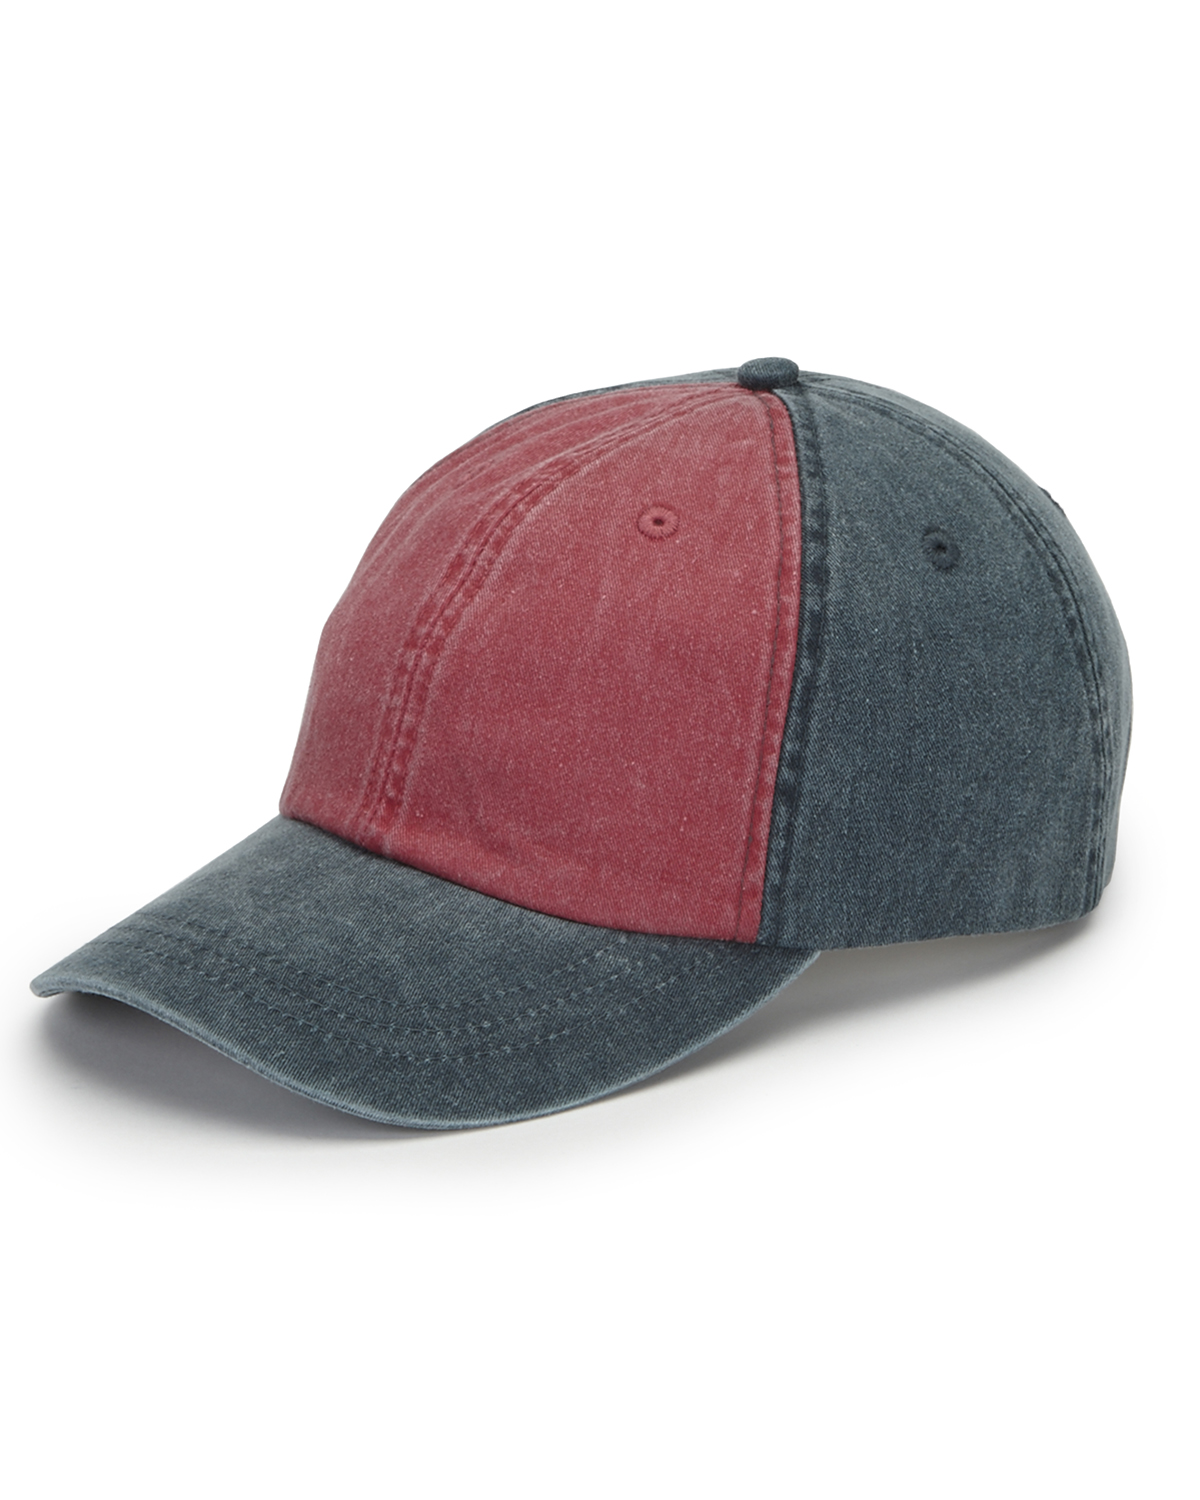 Adams Caps Lp106 Spinnaker Cap 5 46 Headwear